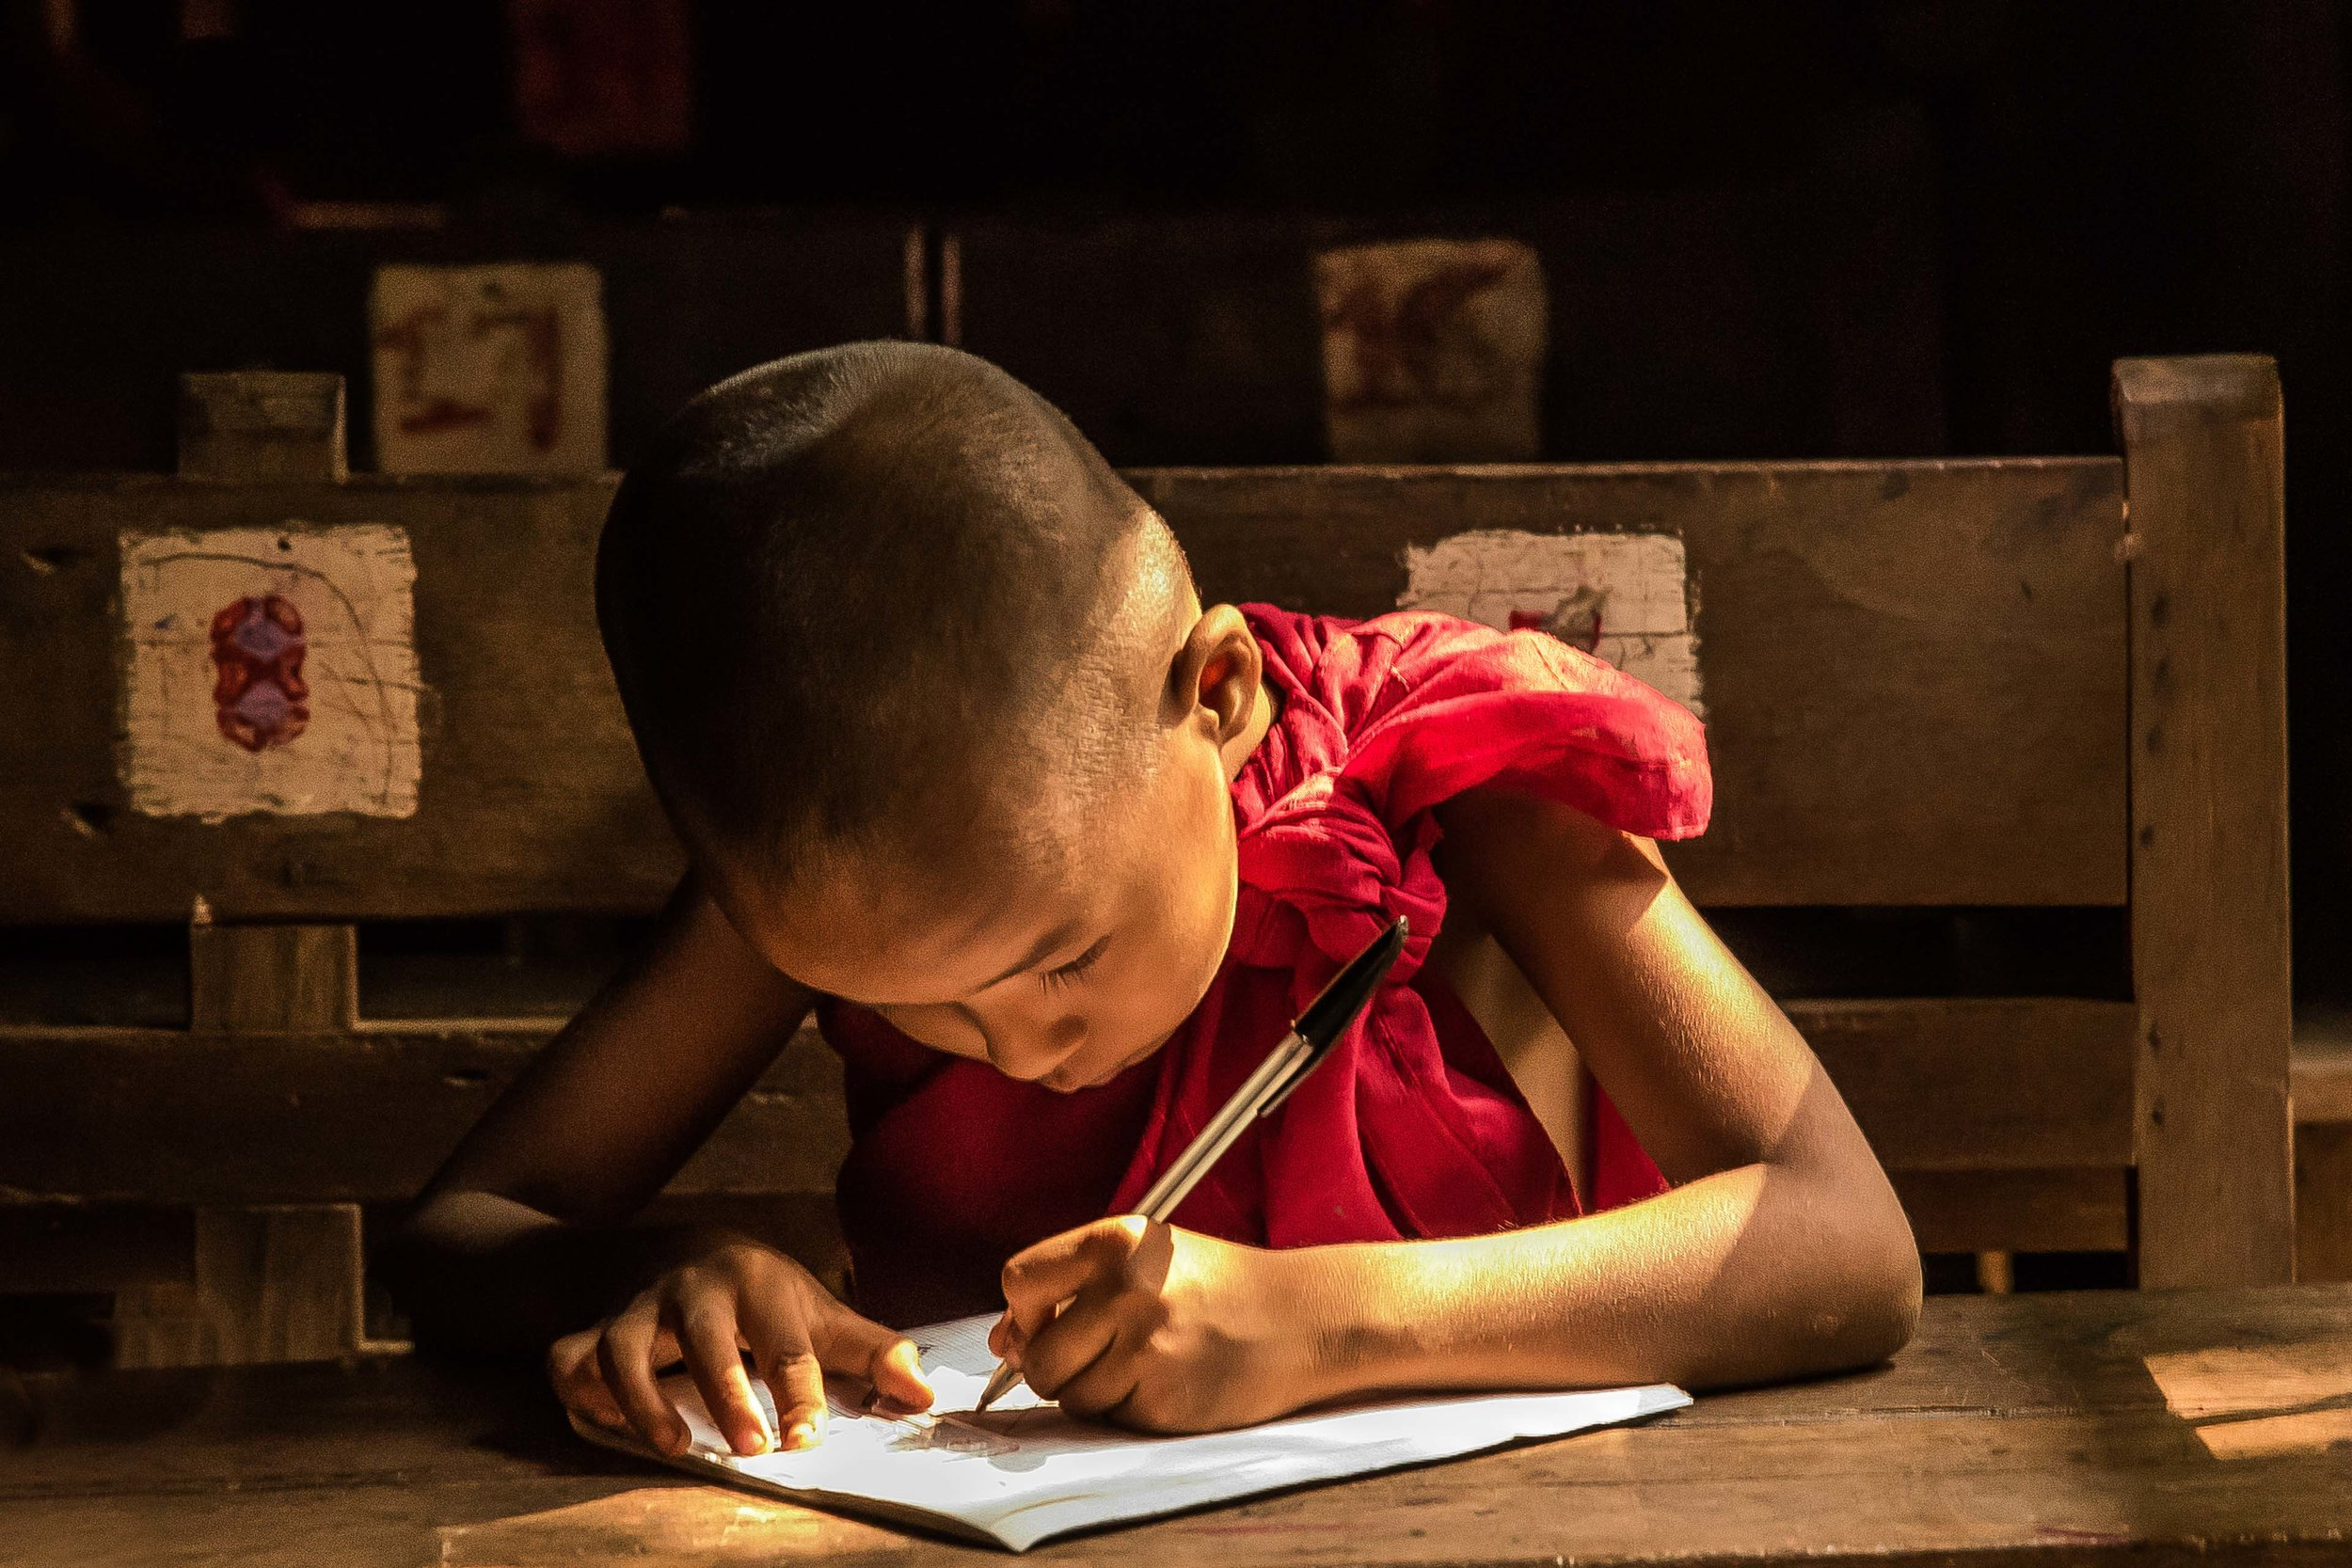 Young Student Monk, Mandalay, Myanmar 2015